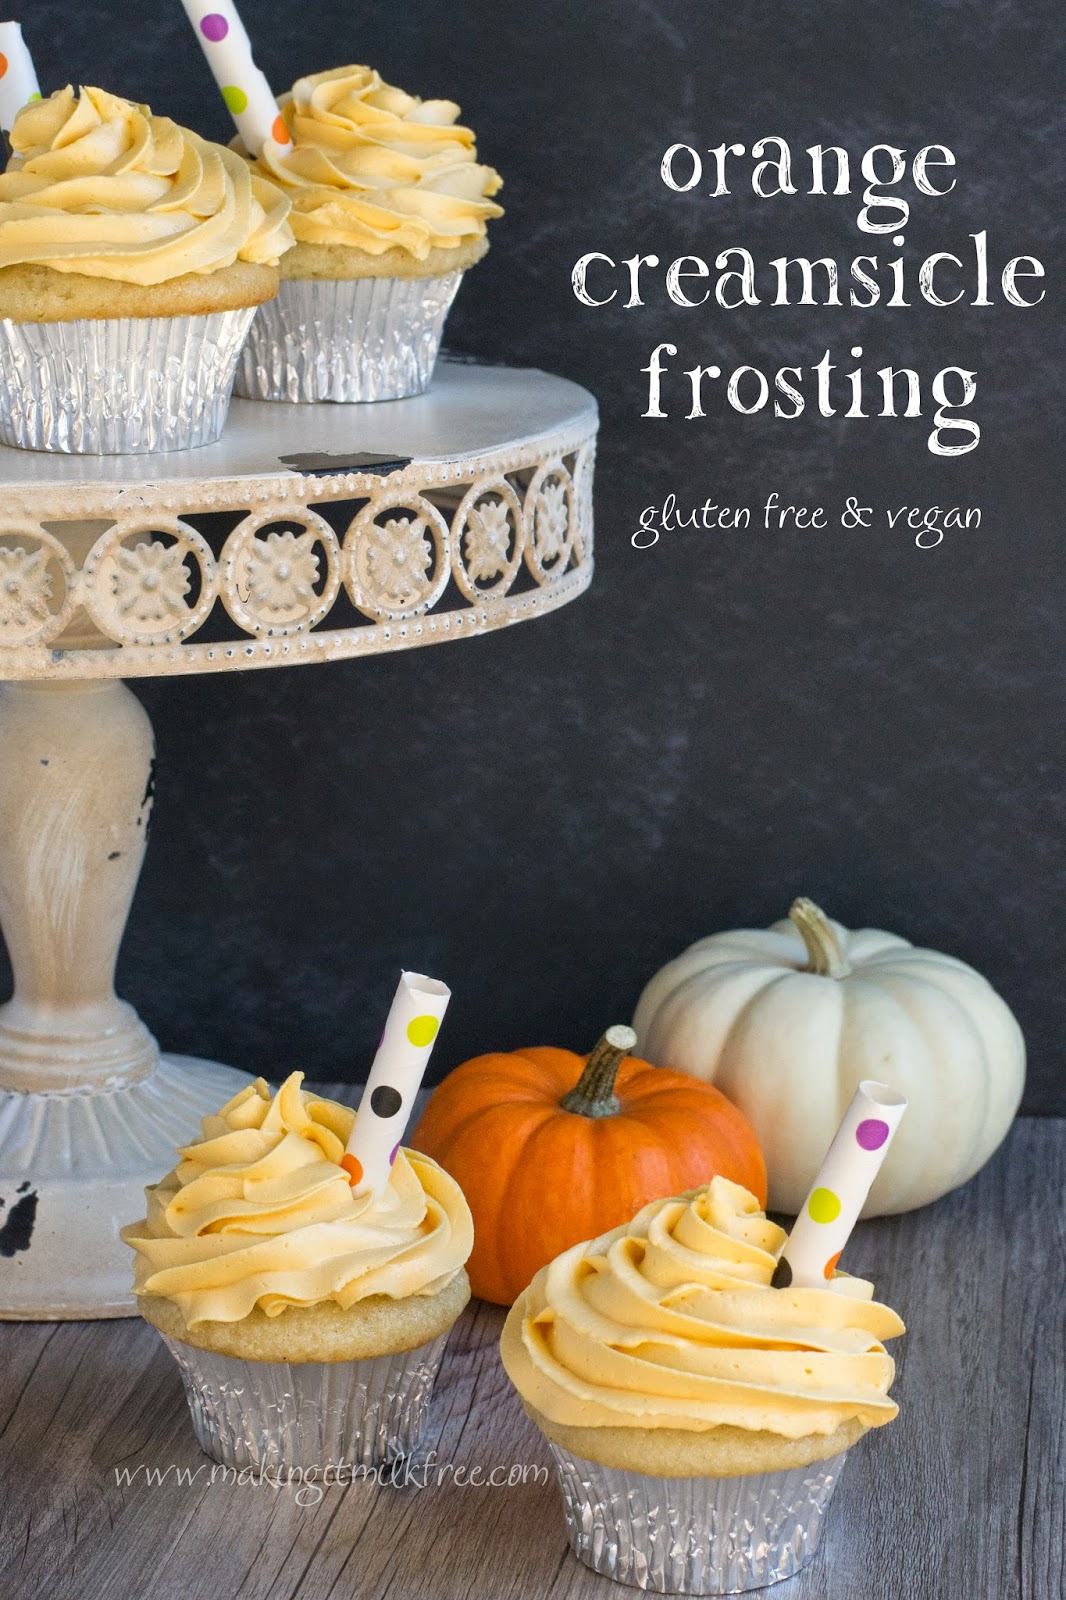 #glutenfree #vegan #orange #creamsicle #frosting